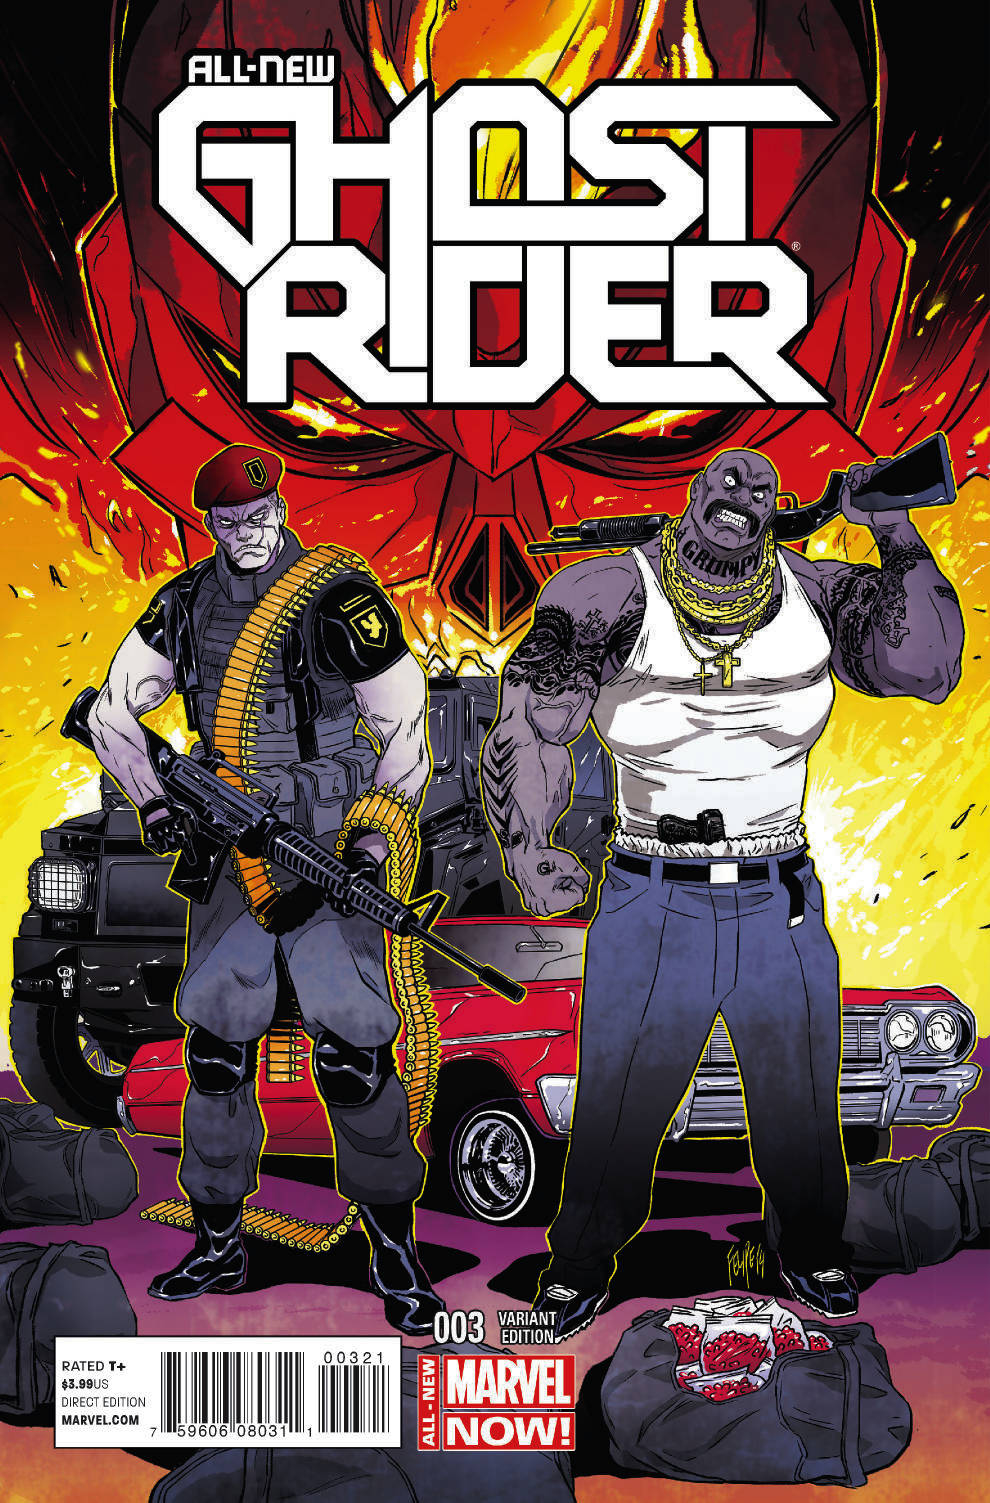 MAR140661 - ALL NEW GHOST RIDER #3 SMITH VAR ANMN - Previews